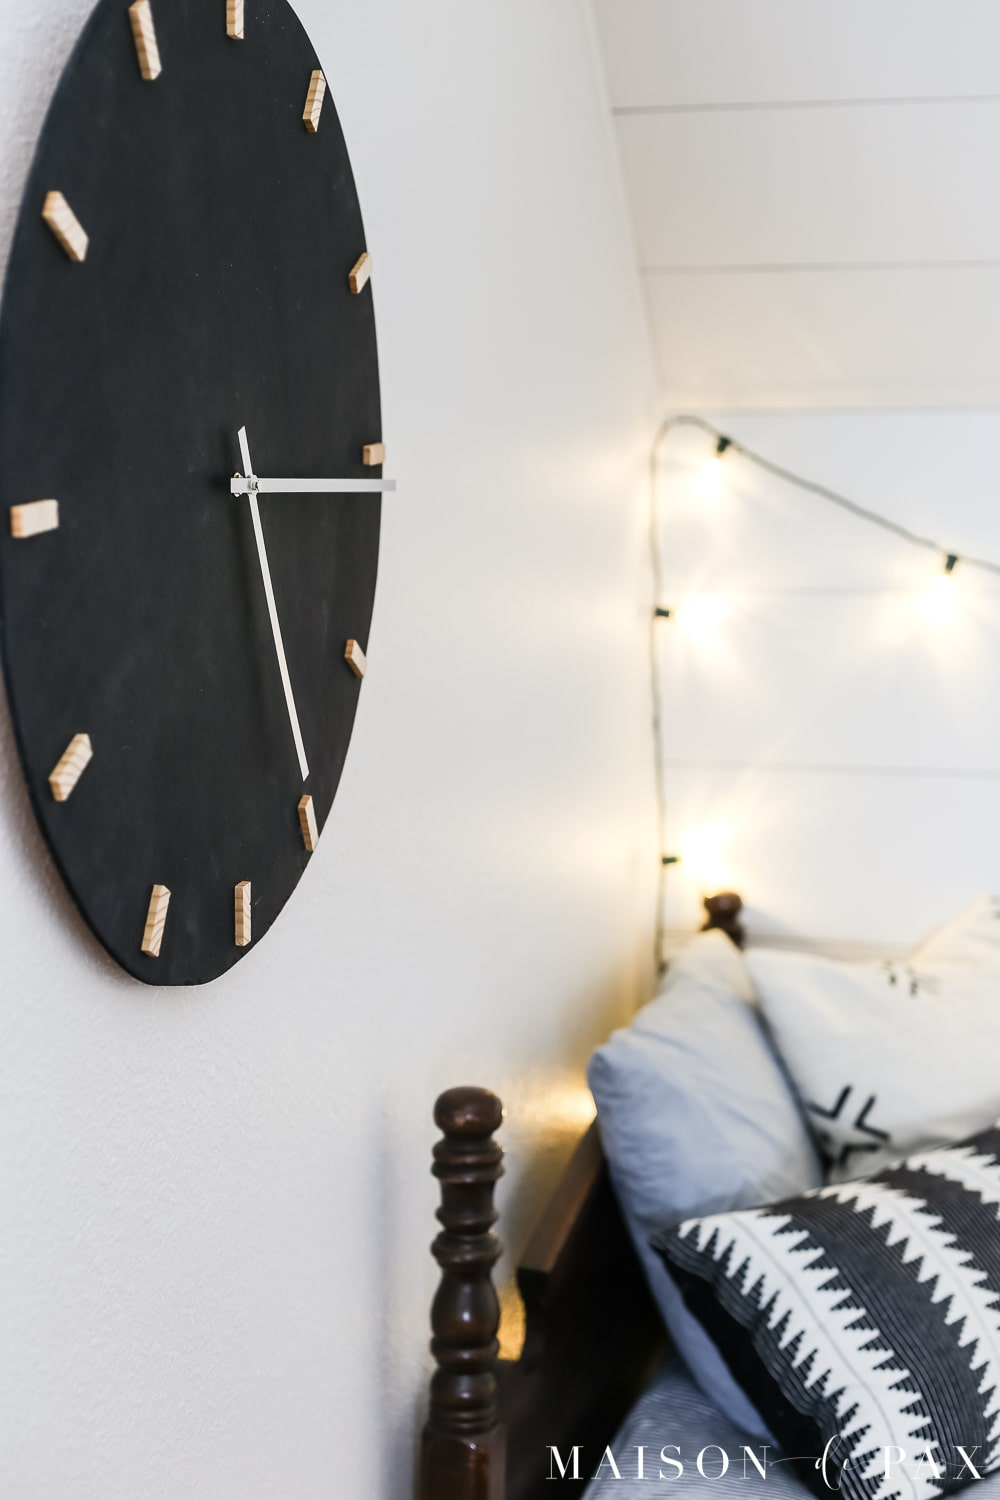 Love this black and wood wall clock!  Learn how to make this DIY black and wood giant wall clock for cheap! #wallart #diywallart #diyclock #wallclock #giantclock #modernfarmhouse #neutraldecor #kidsroom #boyroom #modernfarmhouse #blackandwhiteinteriors